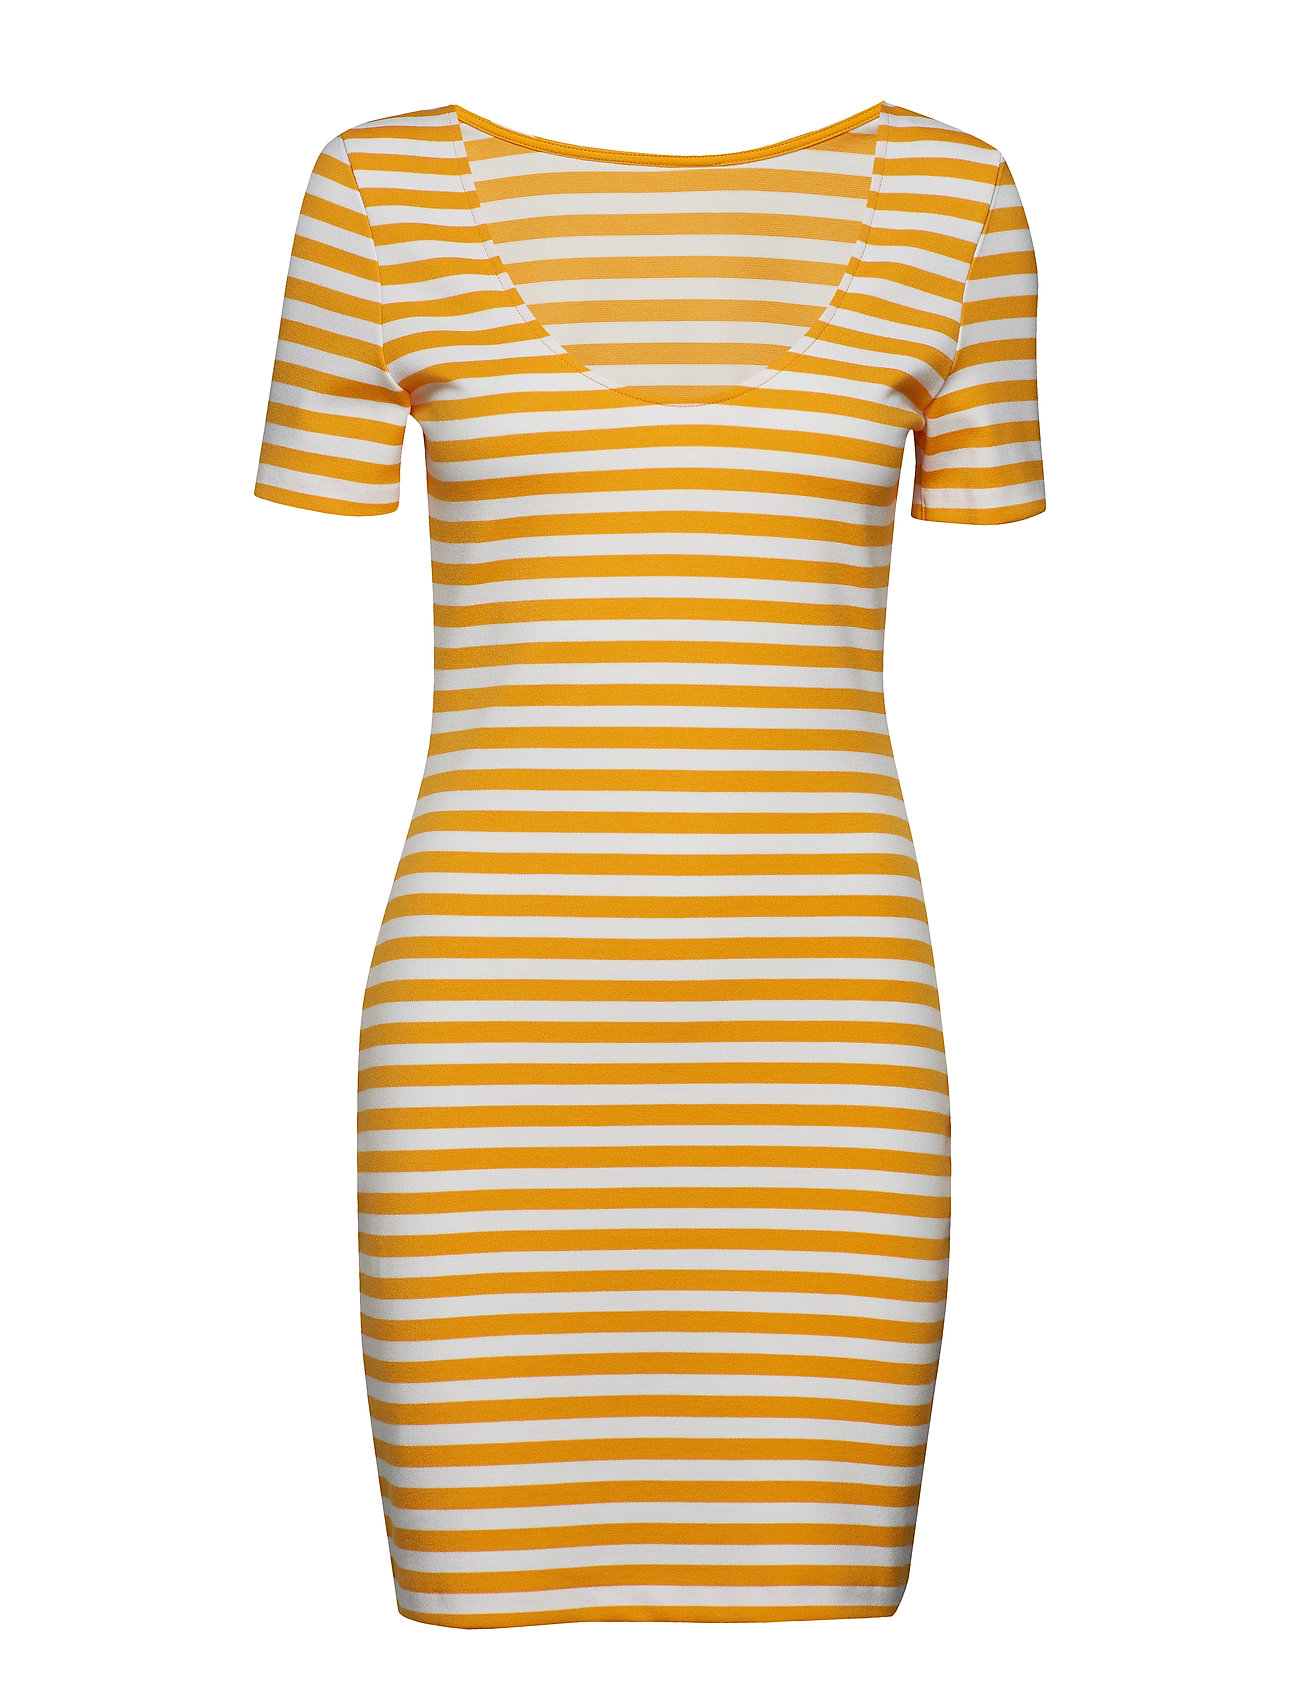 Tommy Jeans TJW TOMMY CLASSICS BODYCON DRESS - RADIANT YELLOW / CLASSIC WHITE